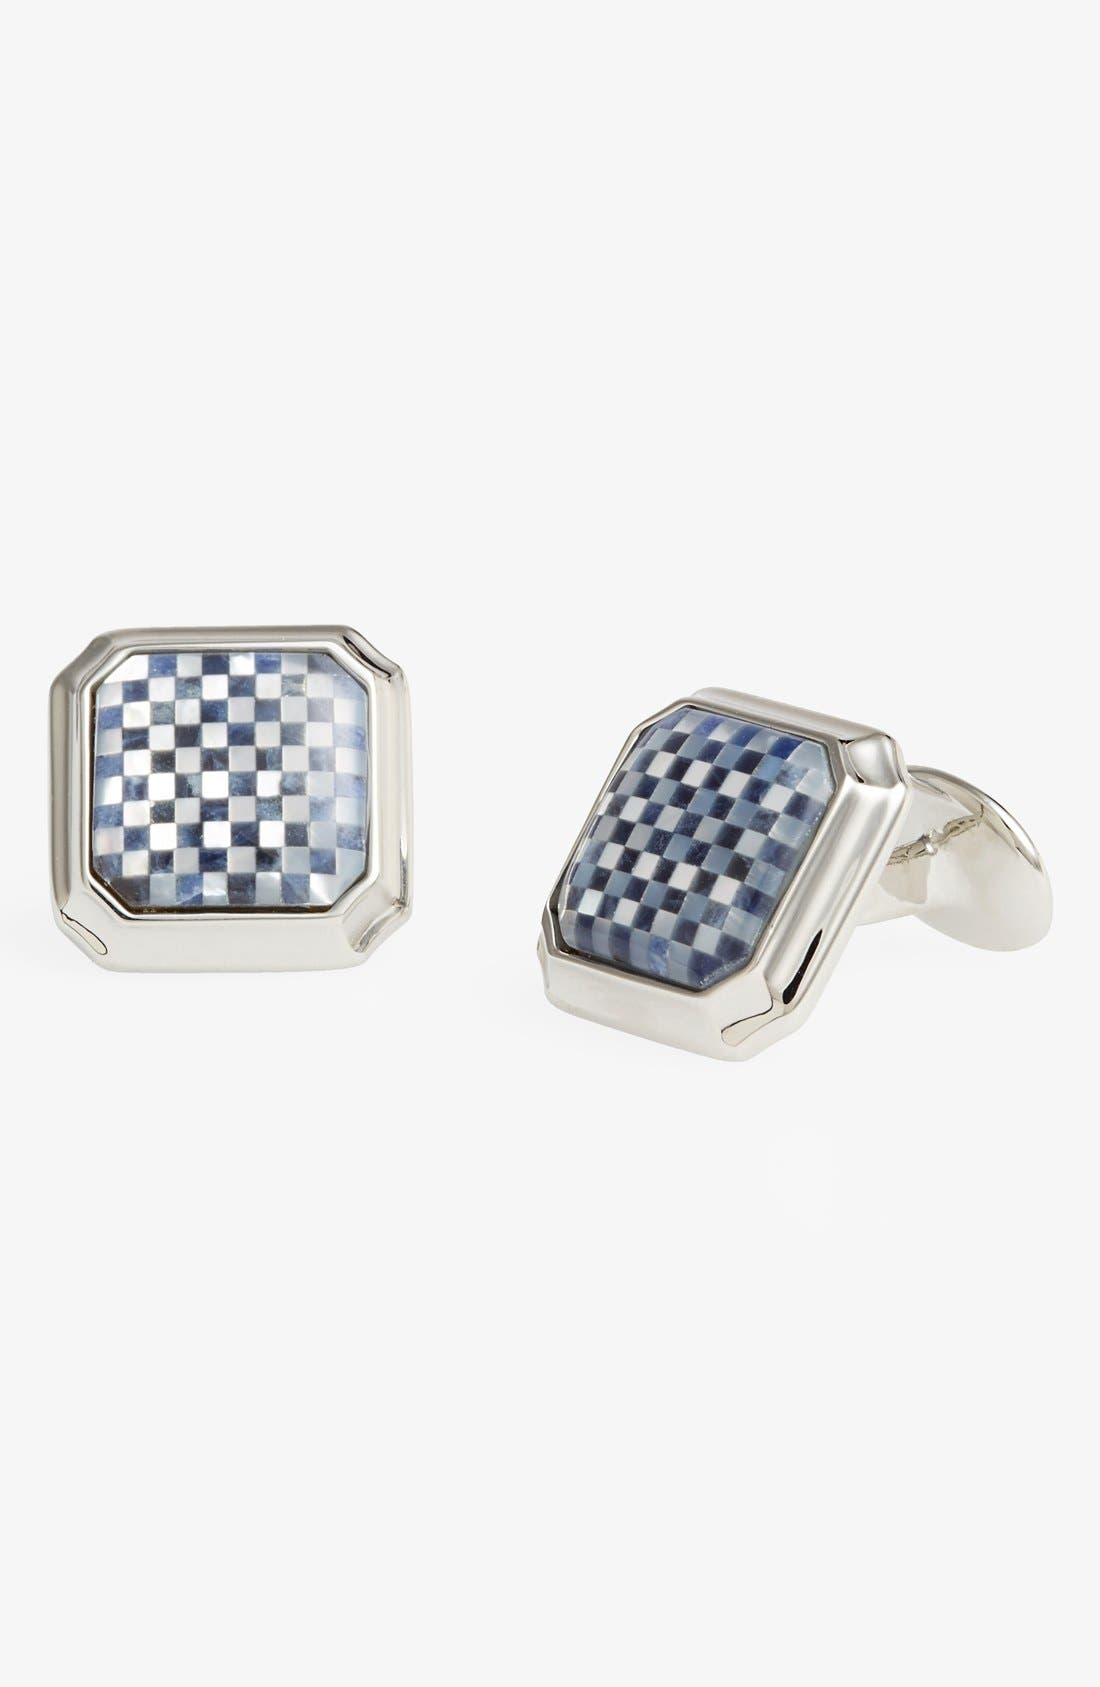 Main Image - David Donahue Mother of Pearl & Sodalite Cuff Links